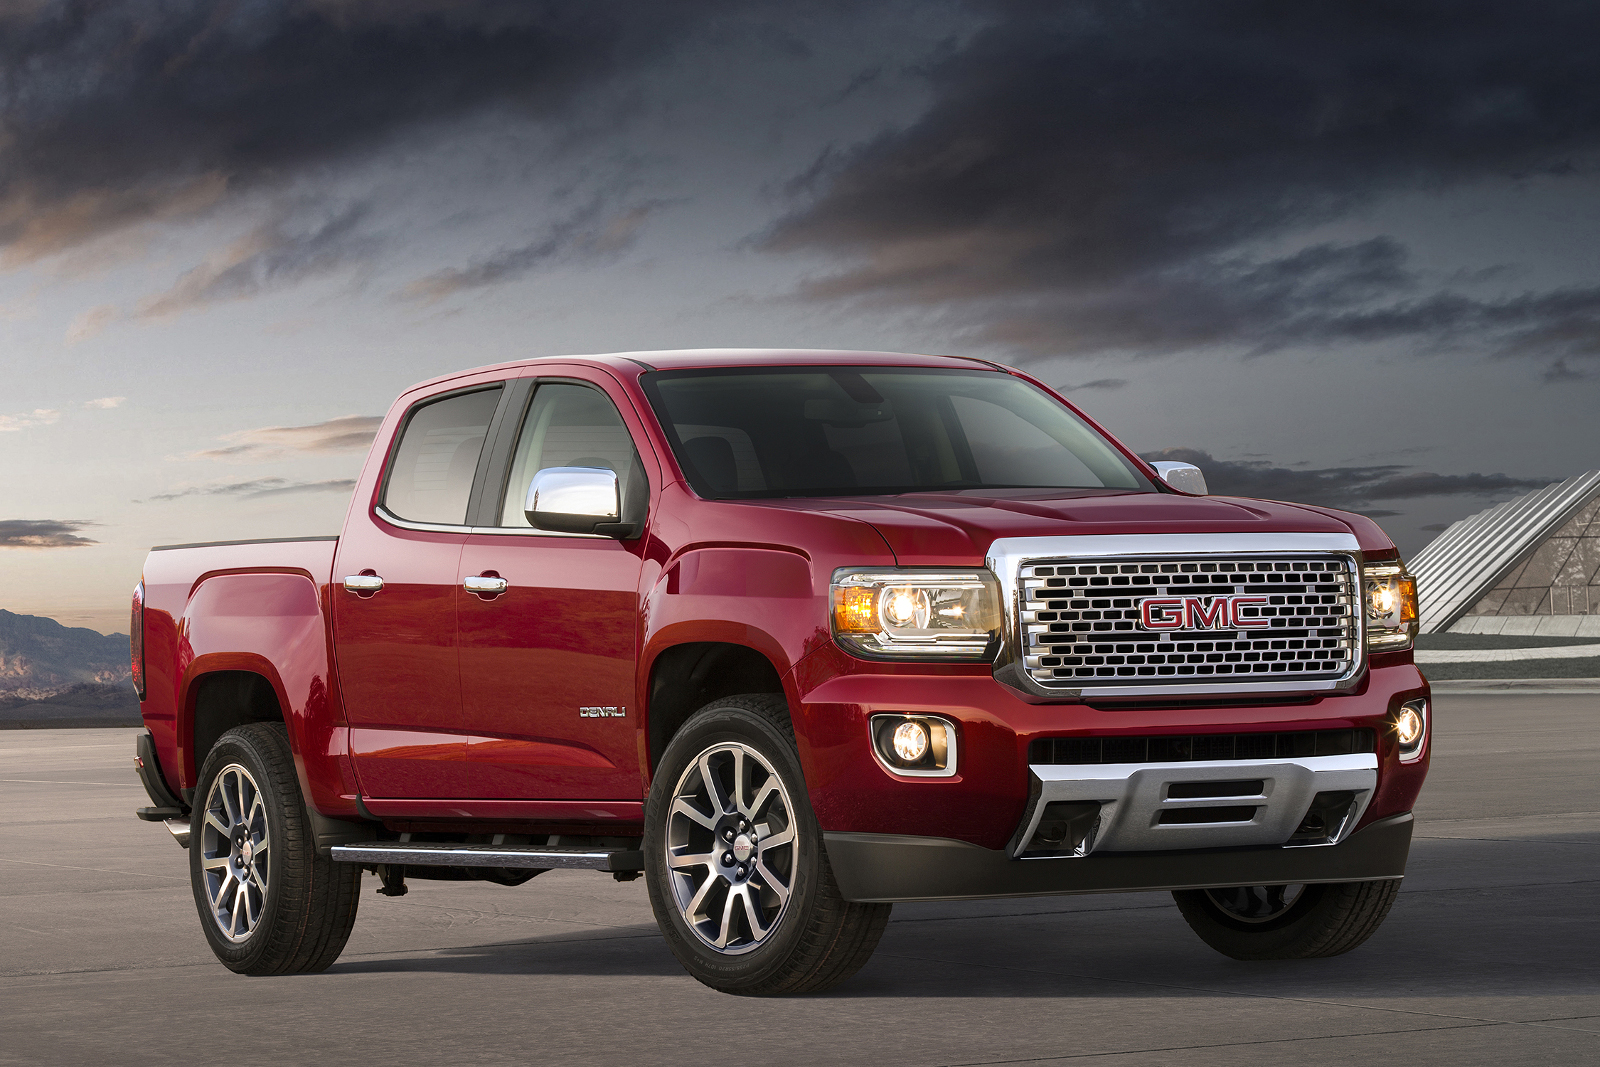 Thread 2017 gmc canyon denali revealed the industry s first premium midsize truck